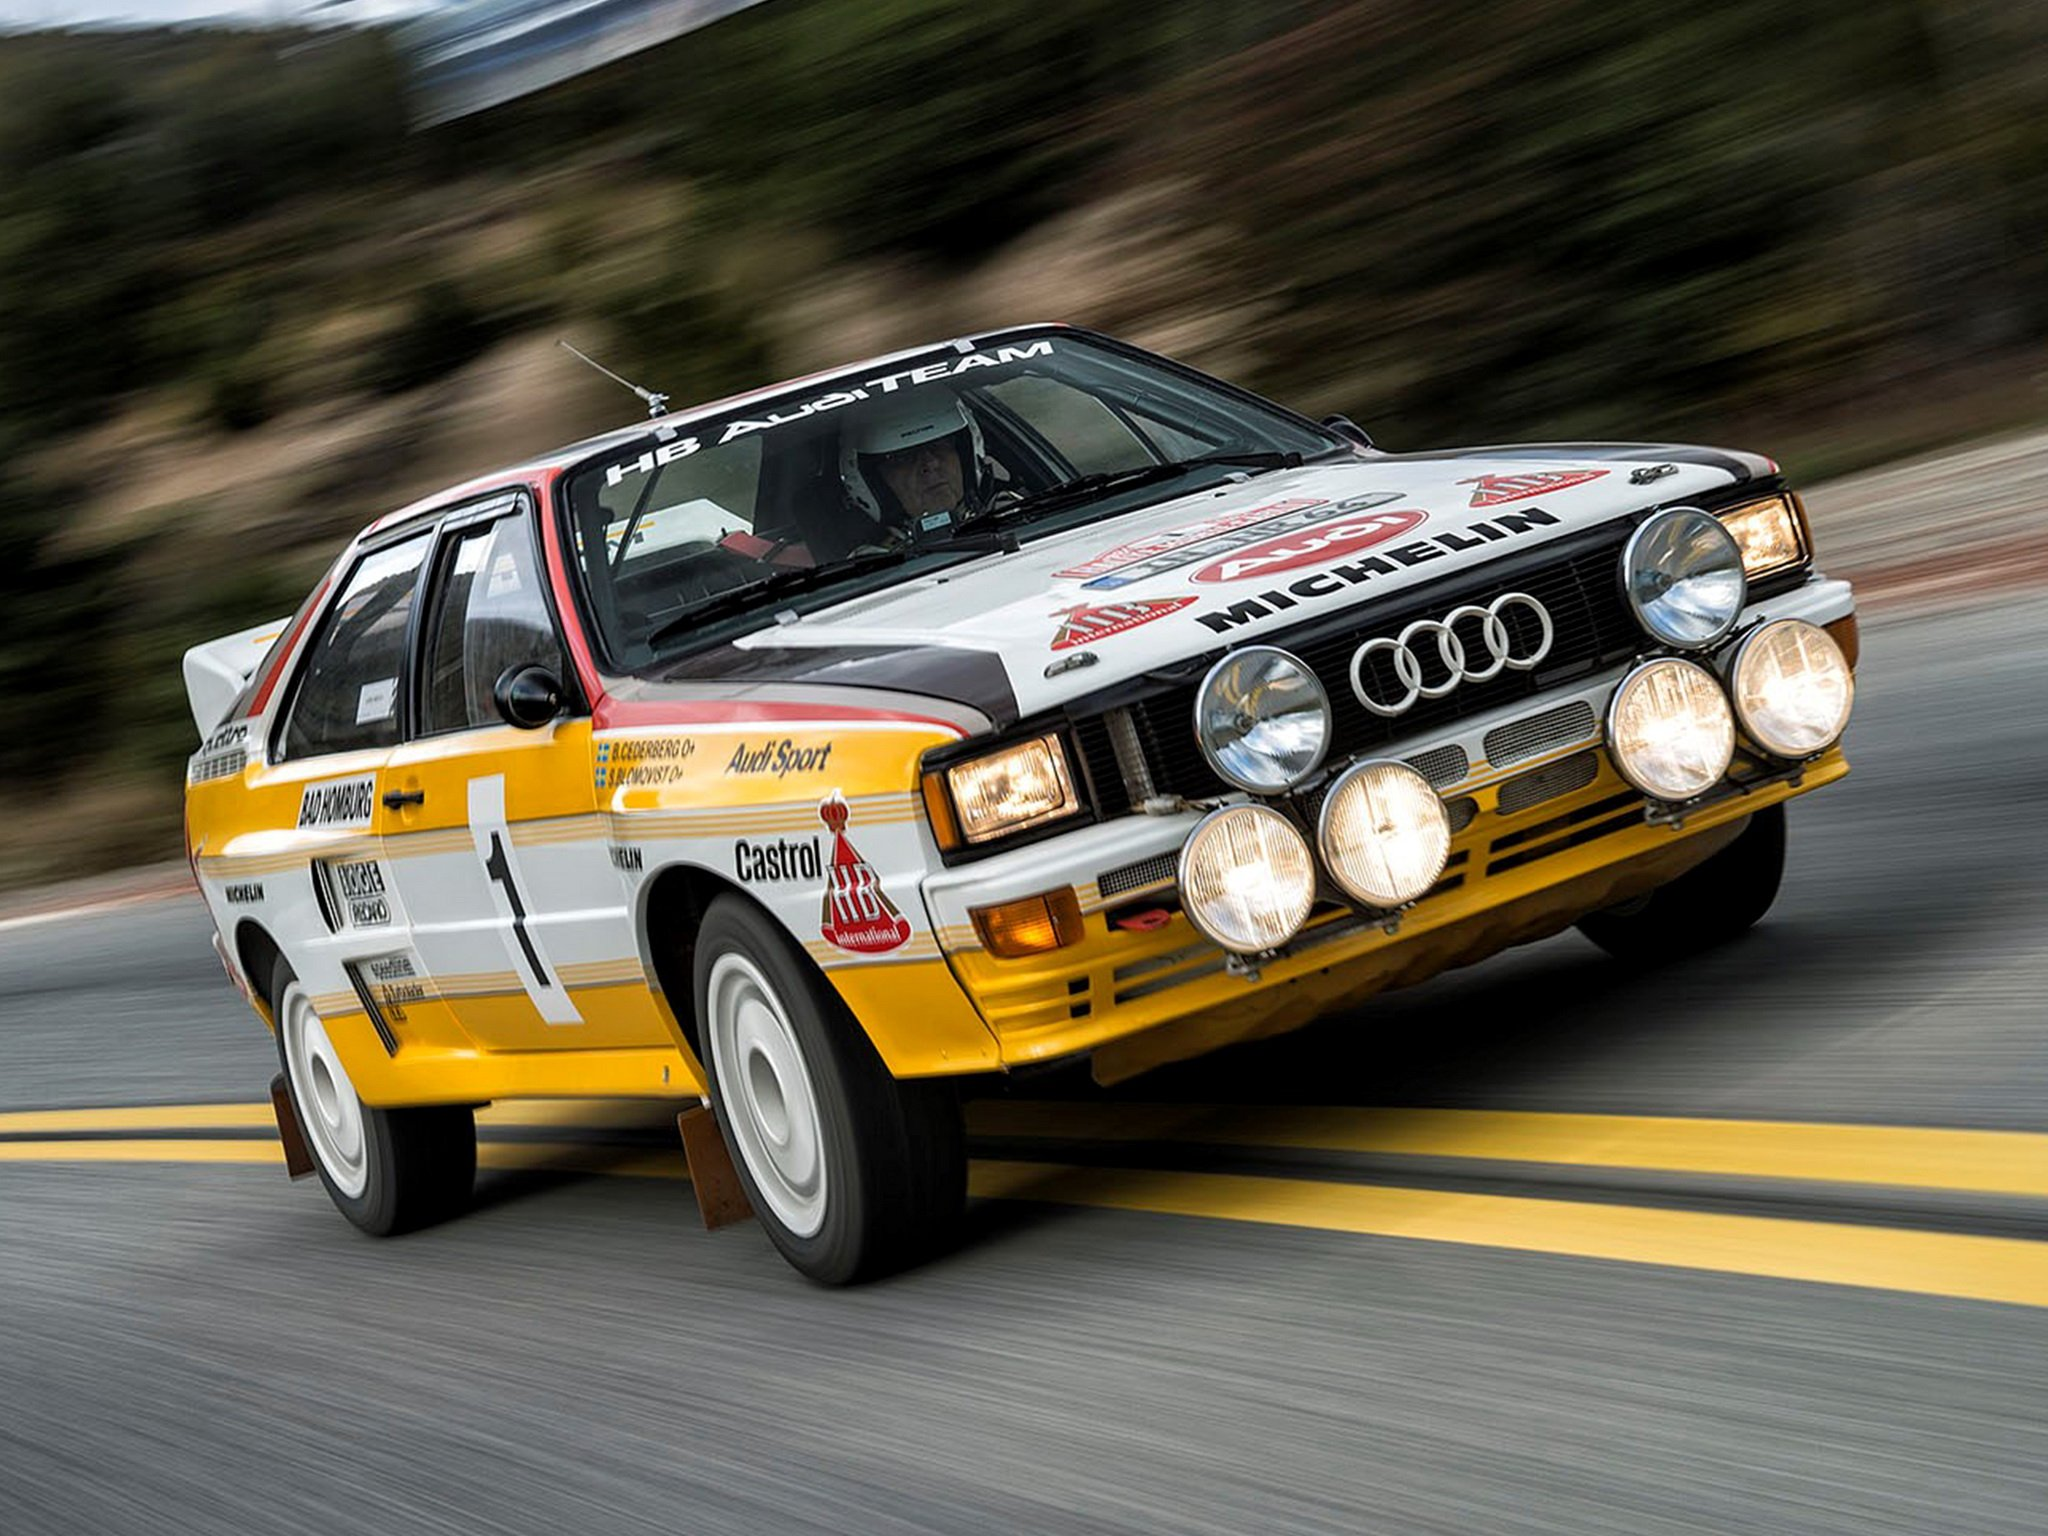 Despite a string of reliably issues, the original A1/A2 Quattro was the dominant force in early '80s rallying